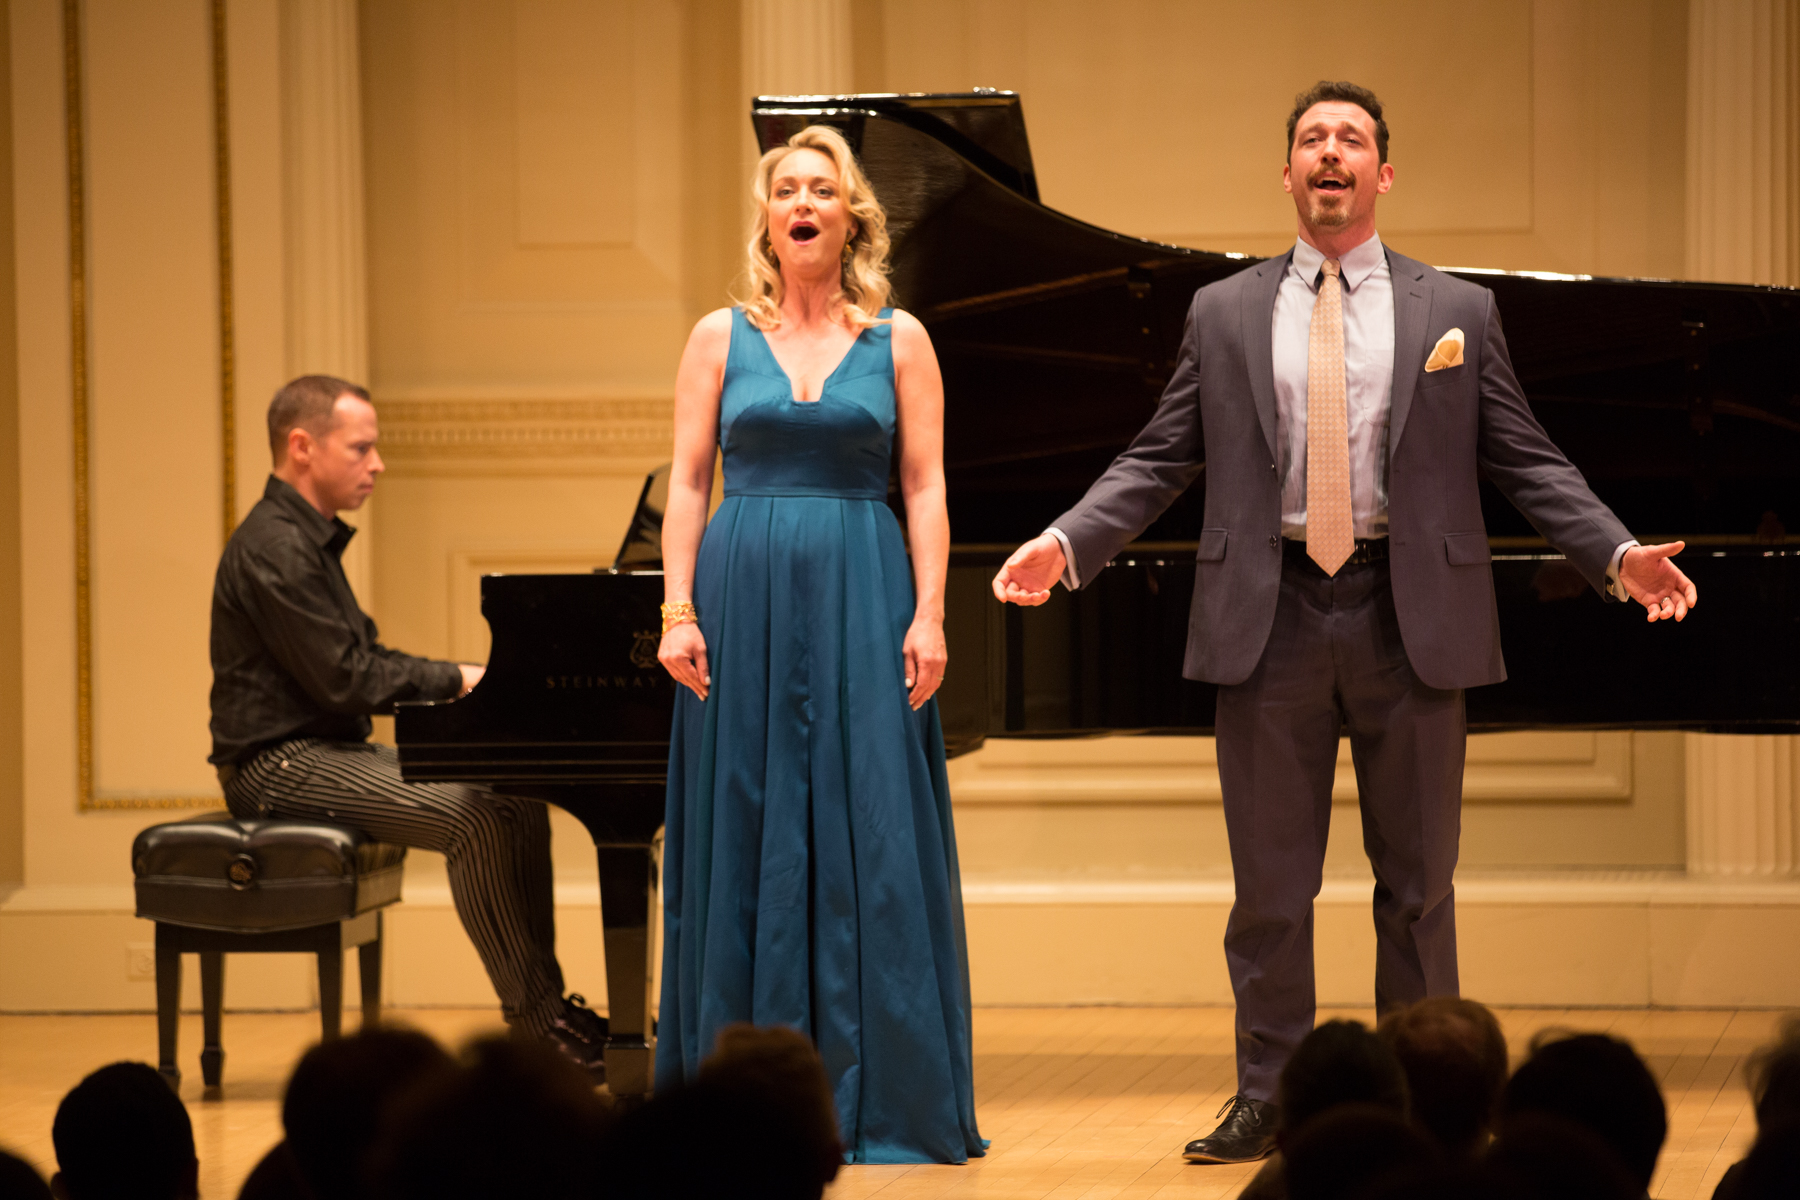 ame-2018-carnegie-hall-vocal-music-of-robert-patersonDG9A7868.jpg